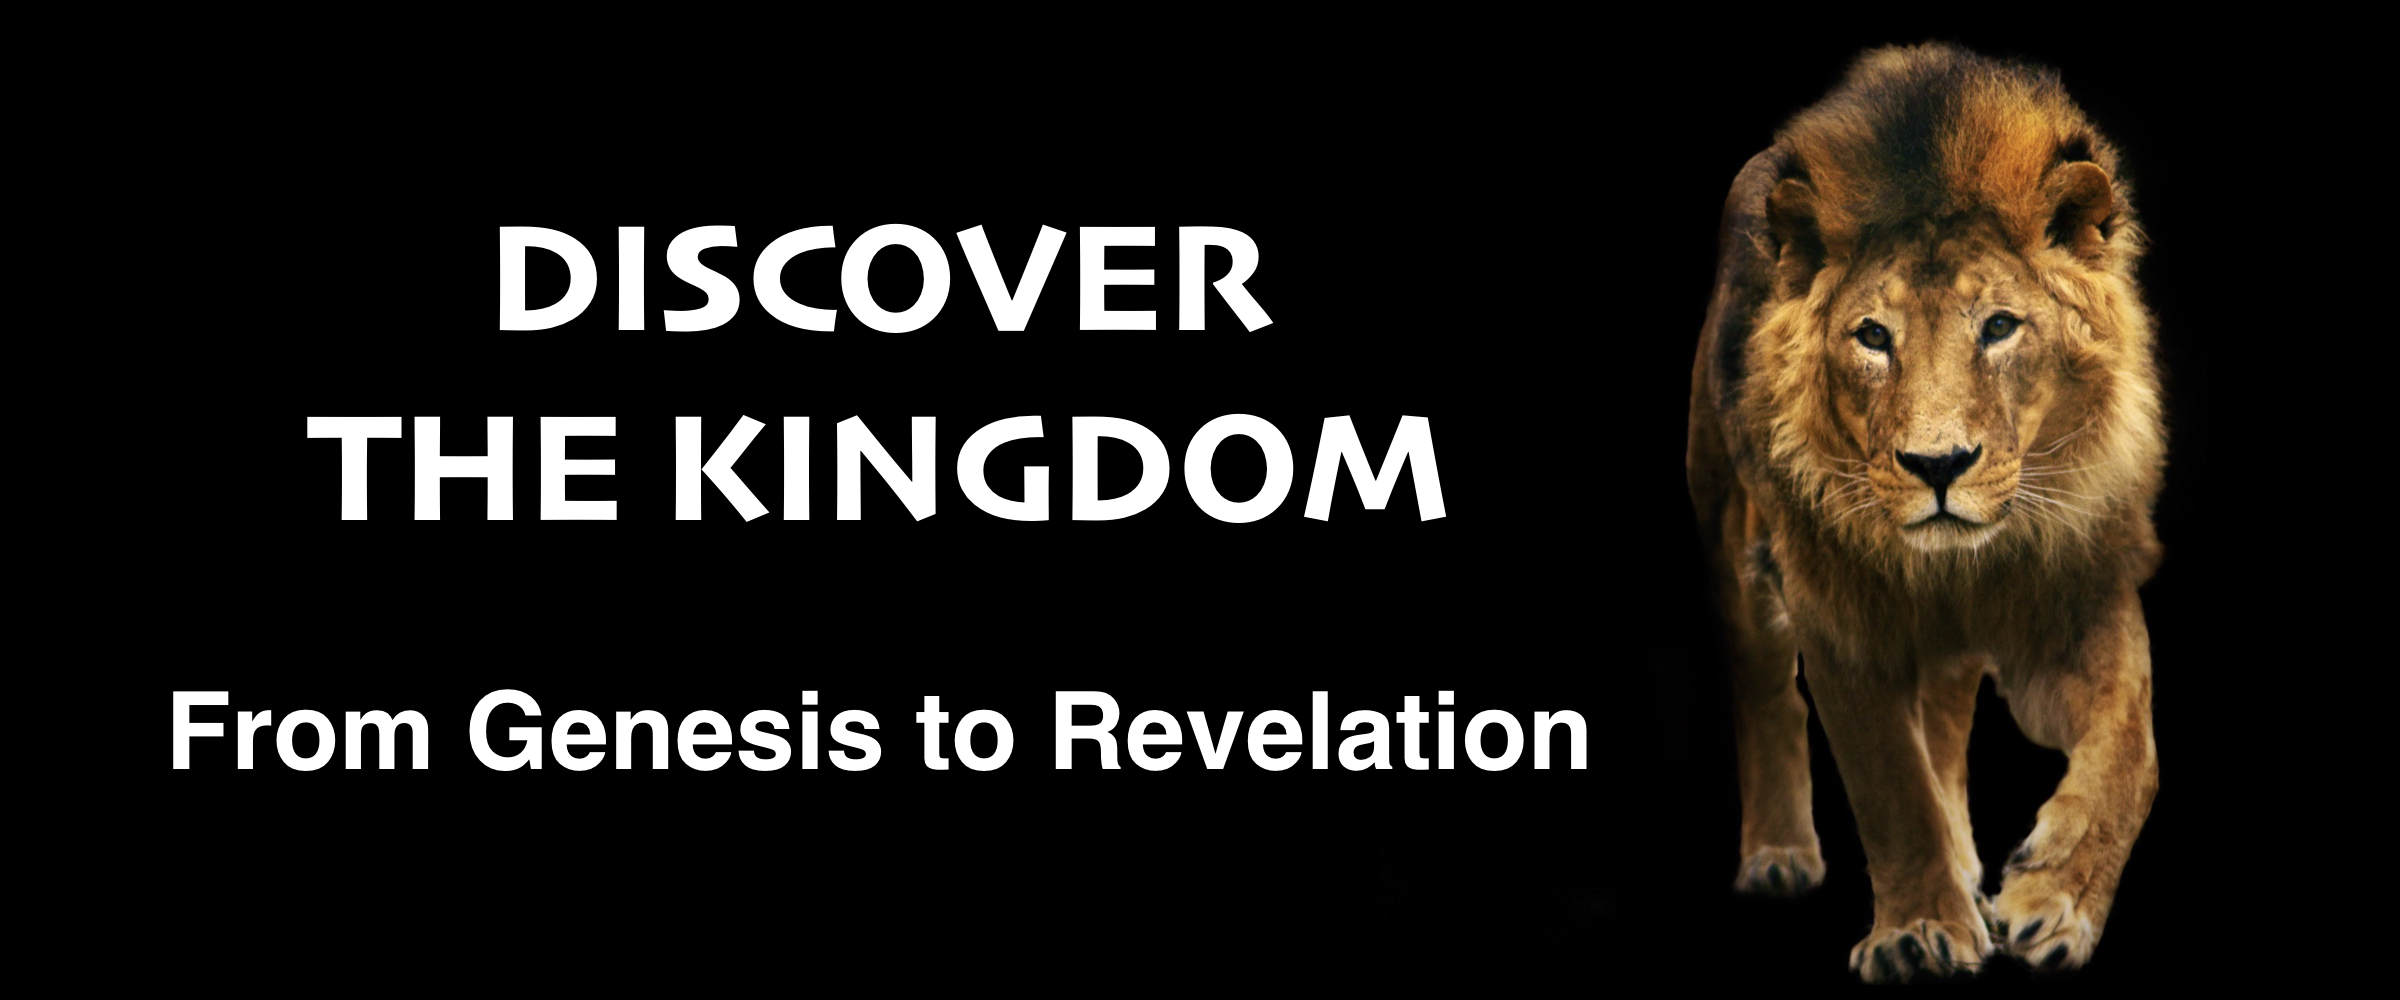 DISCOVER THE KINGDOM (Event Thumbnail).001.png